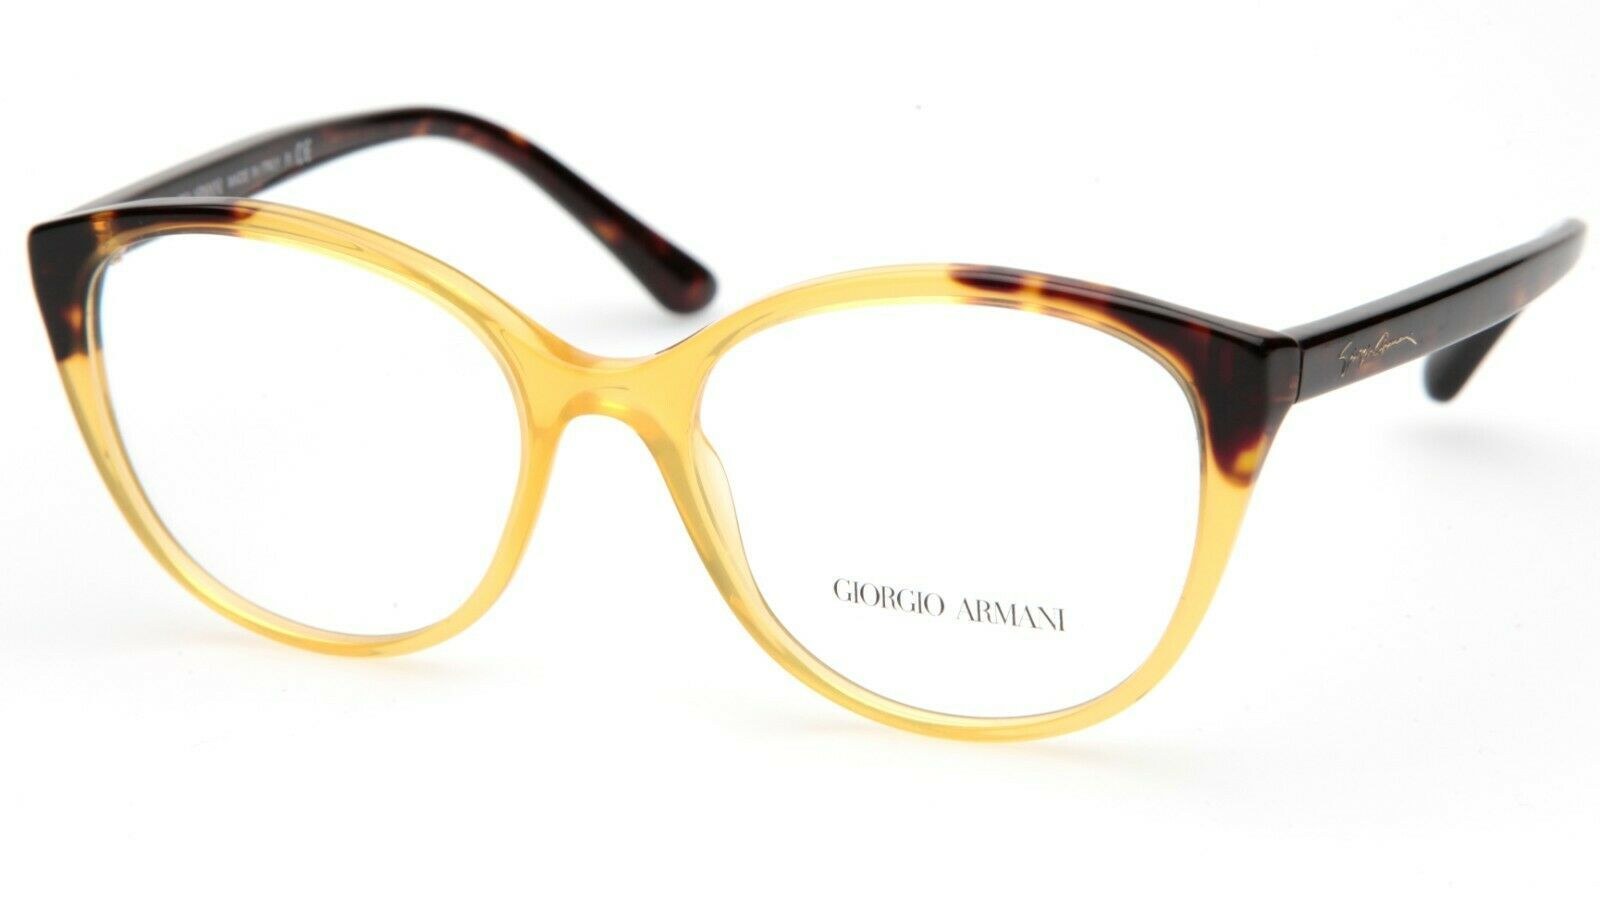 Primary image for New GIORGIO ARMANI AR7138 5582 Yellow EYEGLASSES FRAME 52-17-140mm B43mm Italy